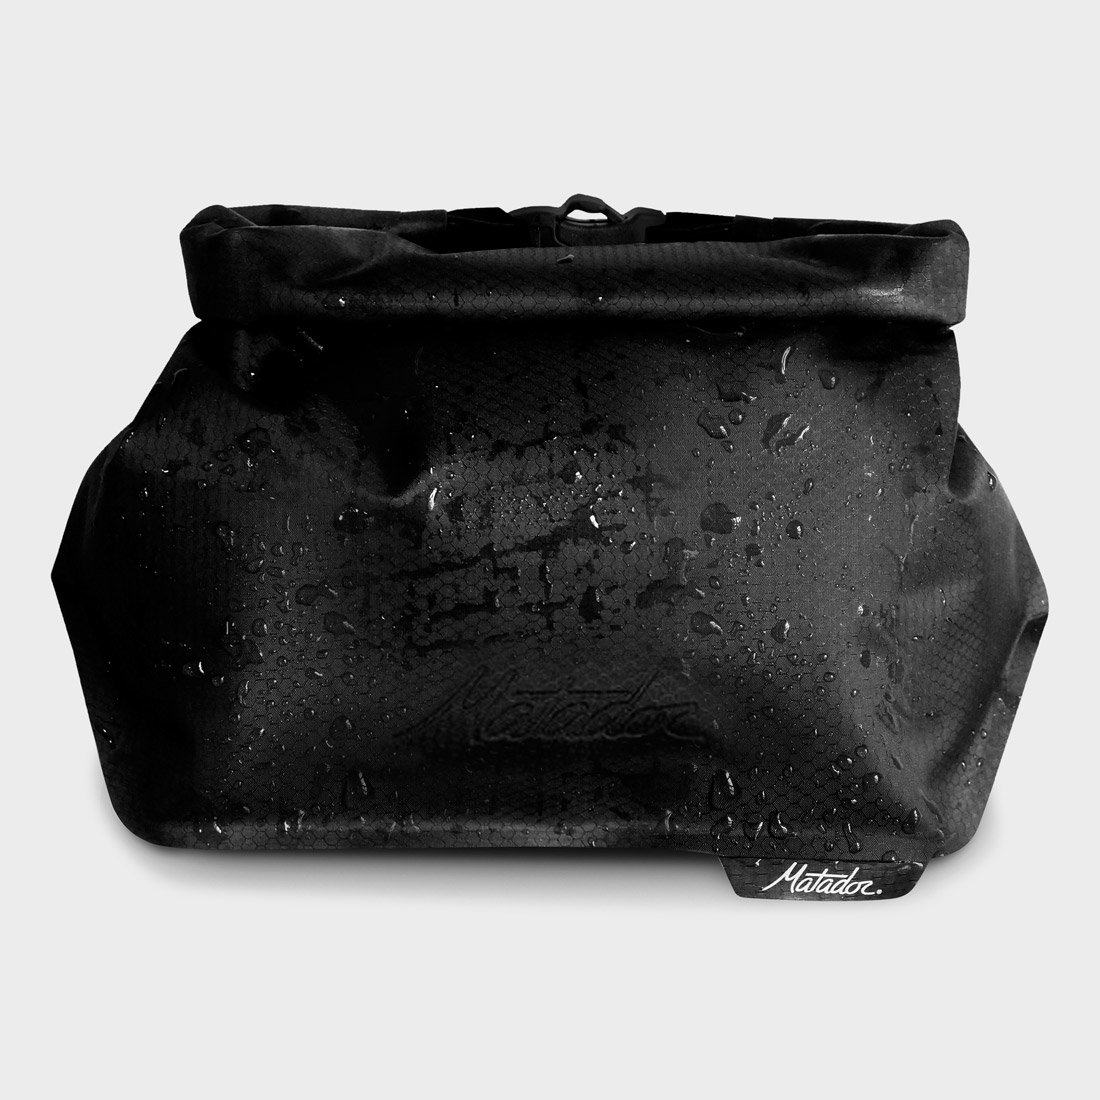 Matador Flatpak Toiletry Case Black